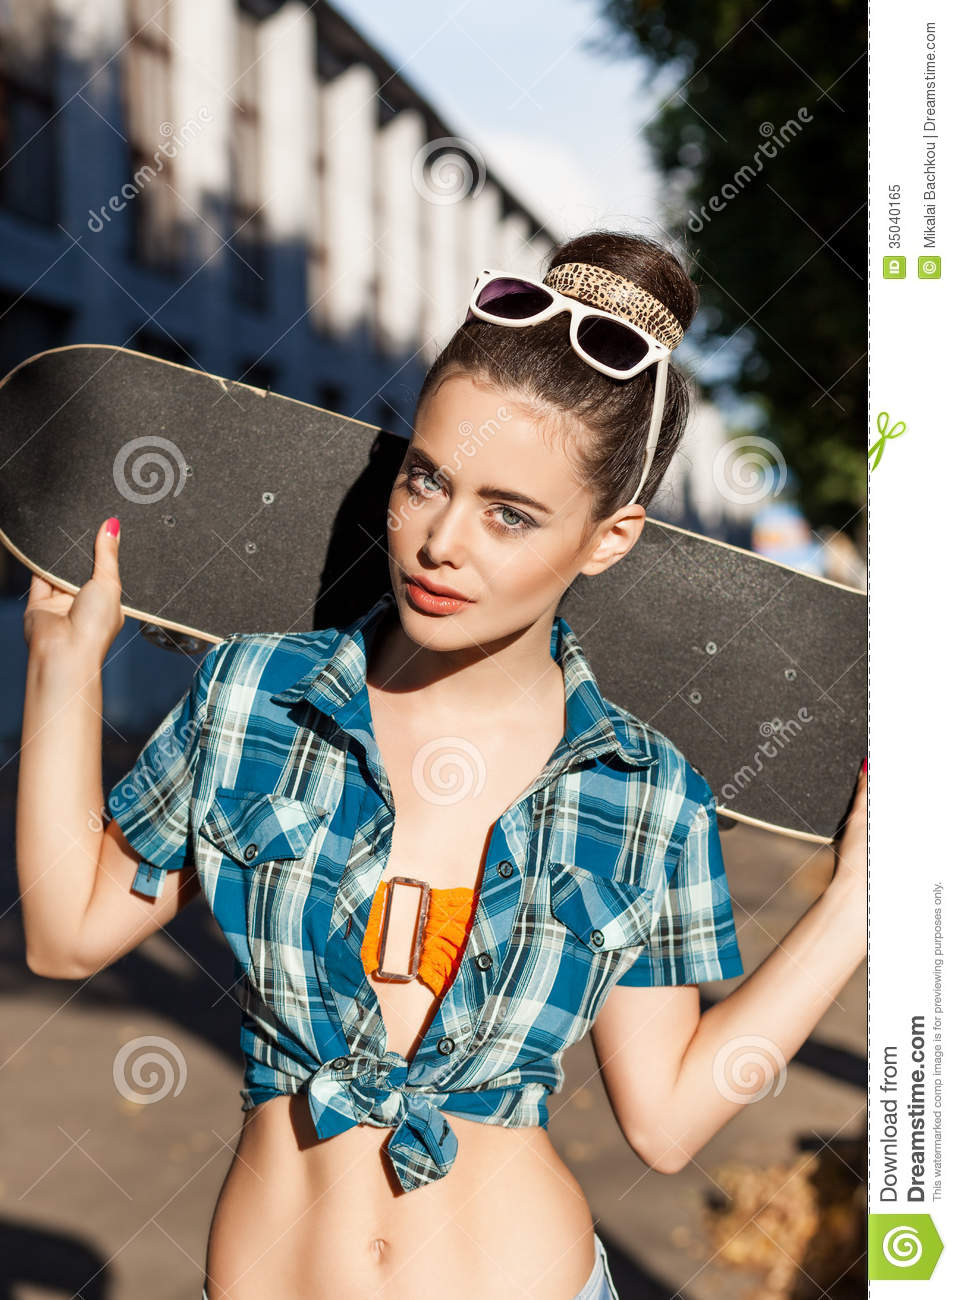 Beautiful lady with skateboard in the city stock image for This guy has an awesome girlfriend shirt